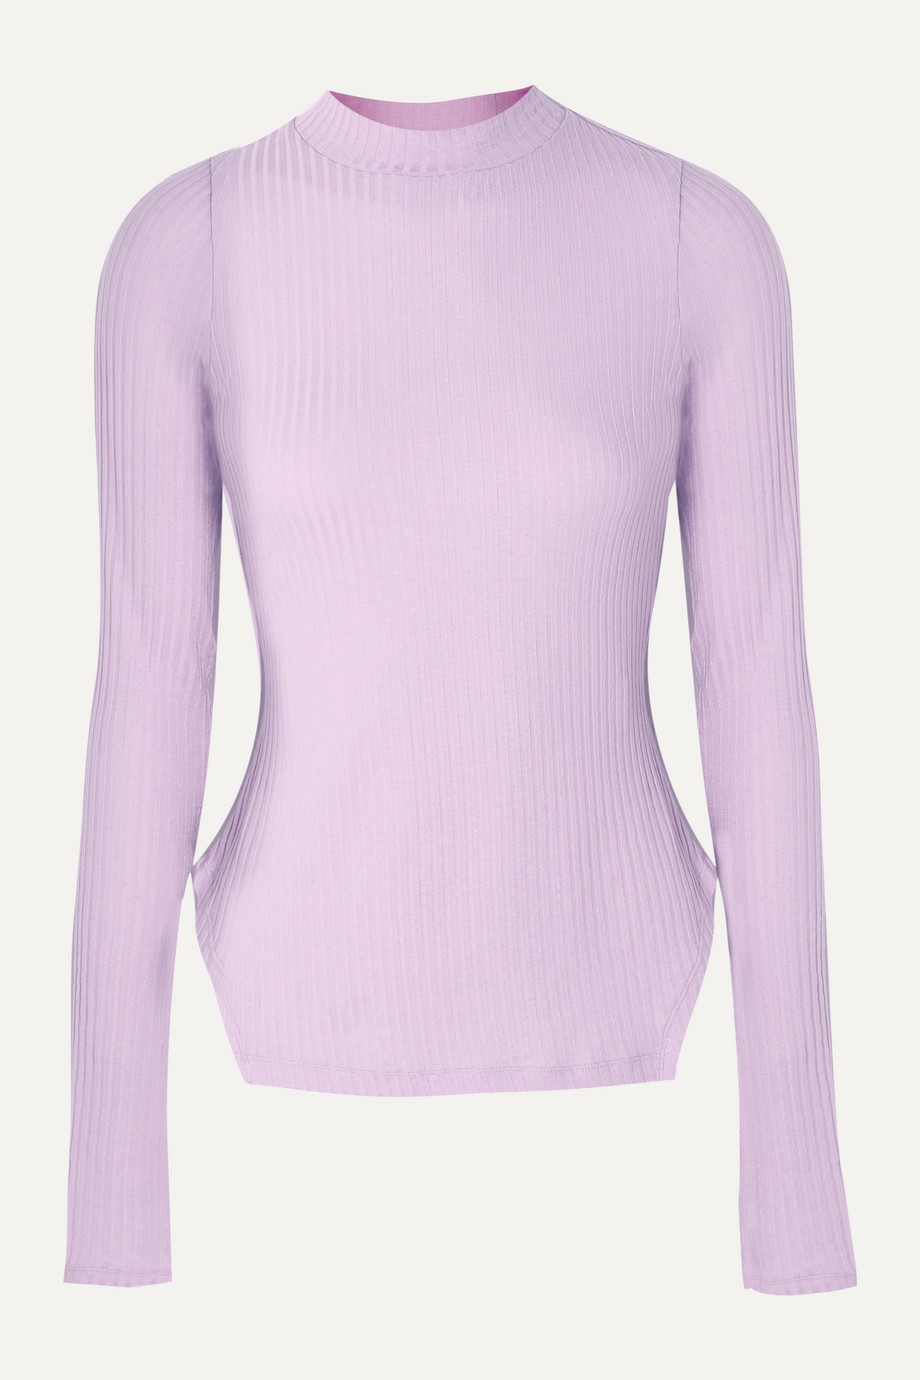 REJINA PYO + NET SUSTAIN Candice ribbed Tencel-blend jersey top